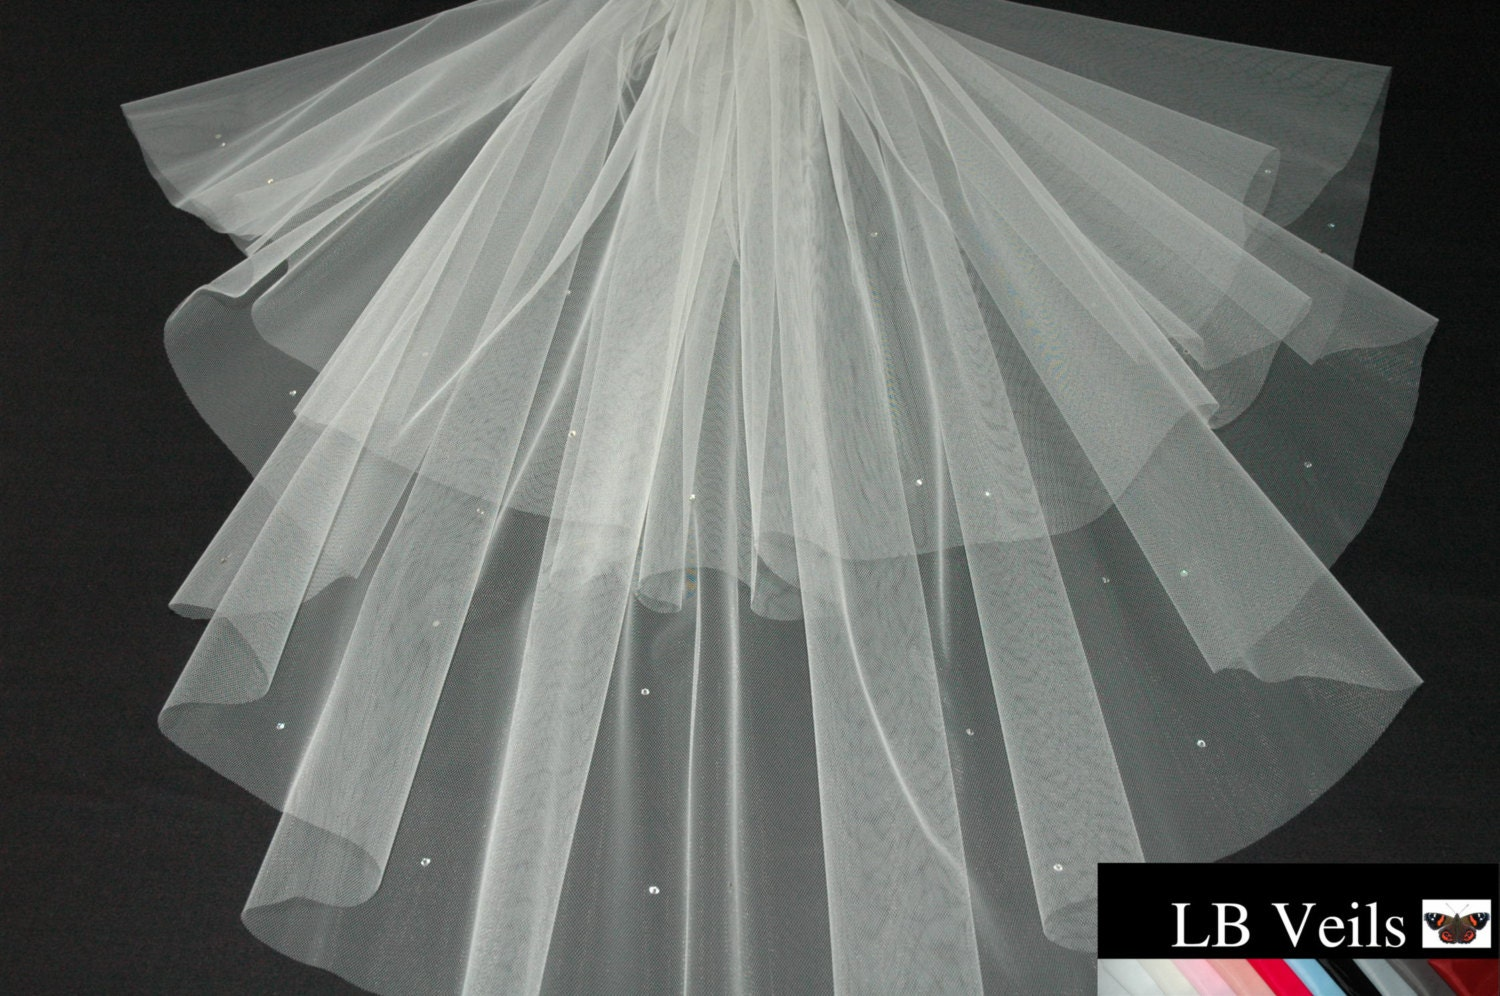 Designer Ivory Wedding Veil Any Length Crystal Diamante All Over LBV151 LB Veils UK